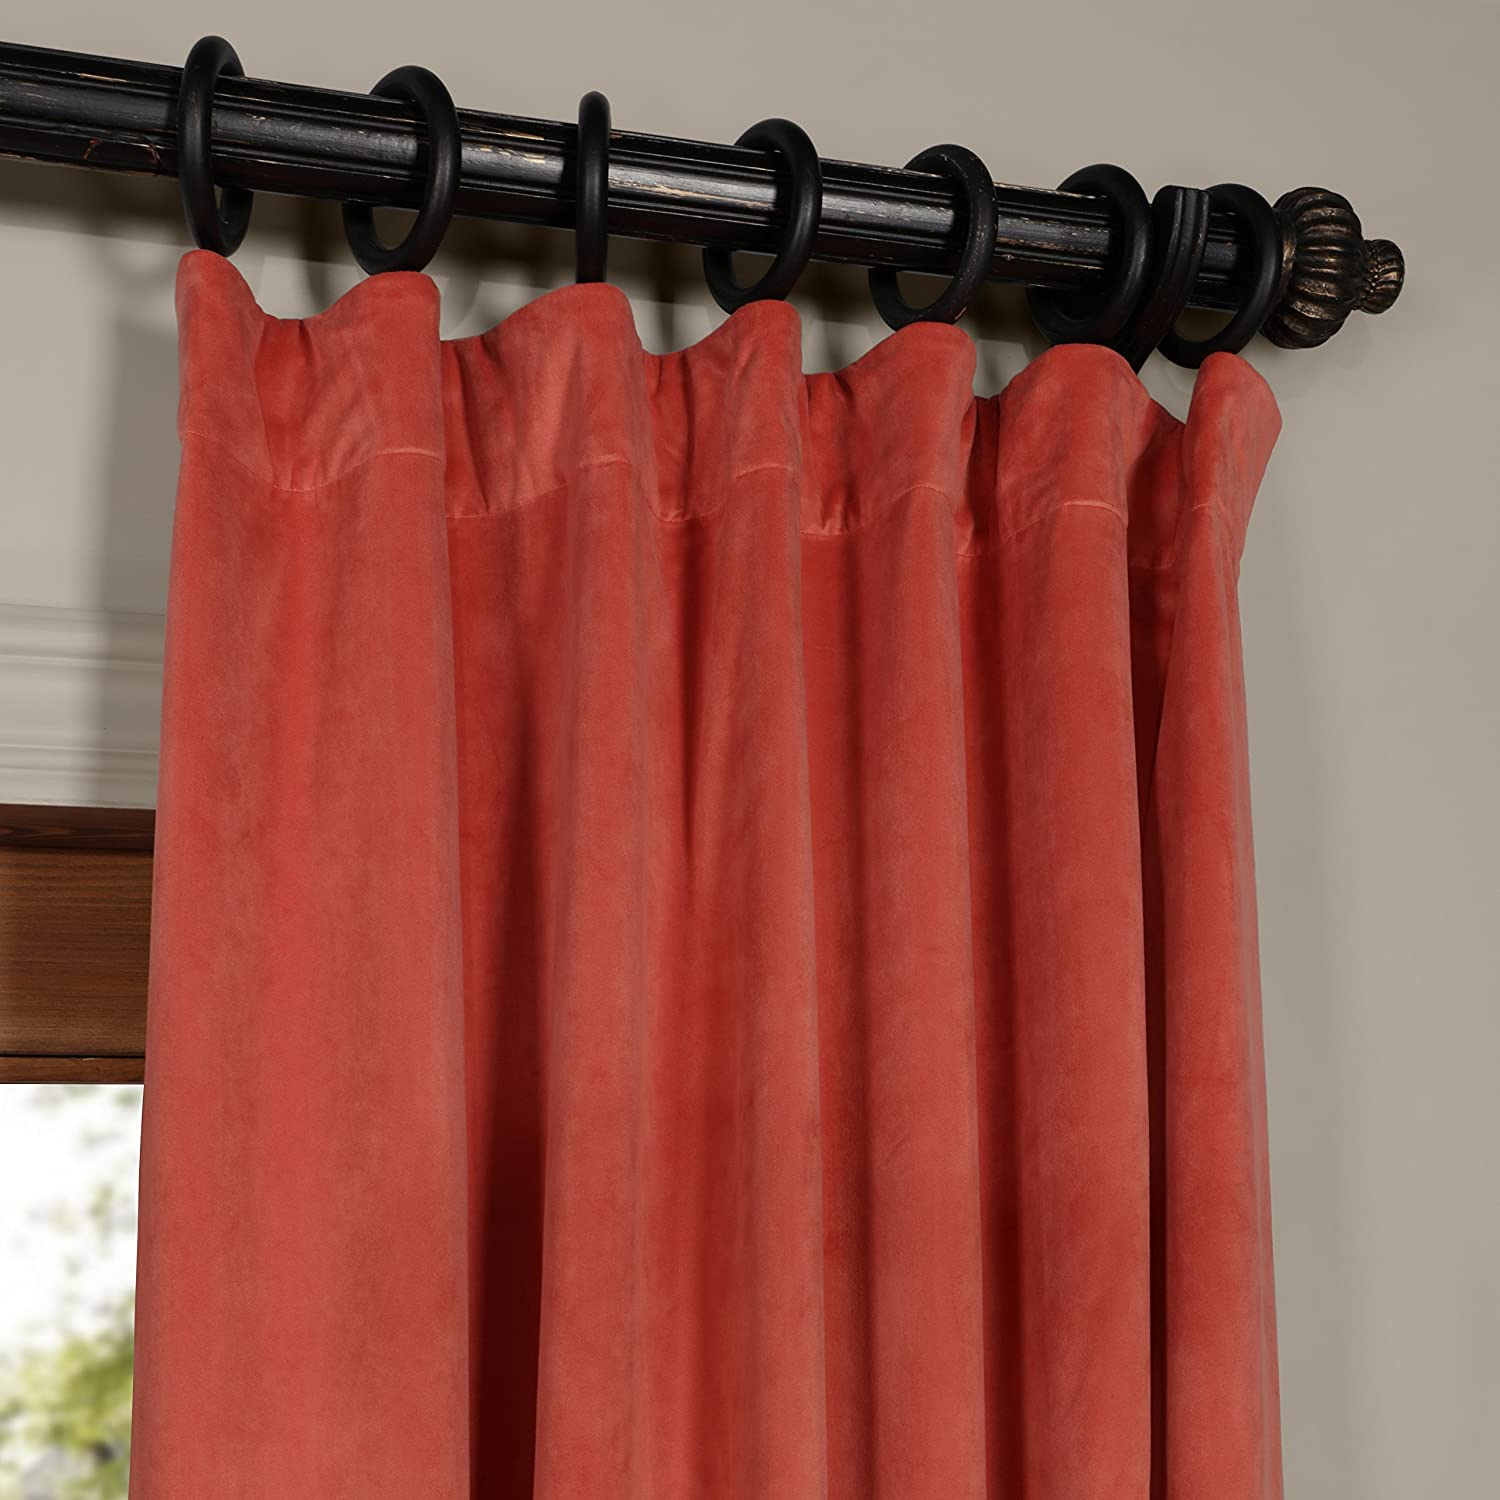 Half Price Drapes VPCH-160406-96 Signature Blackout Velvet Curtain, Desert Coral, 50 X 96